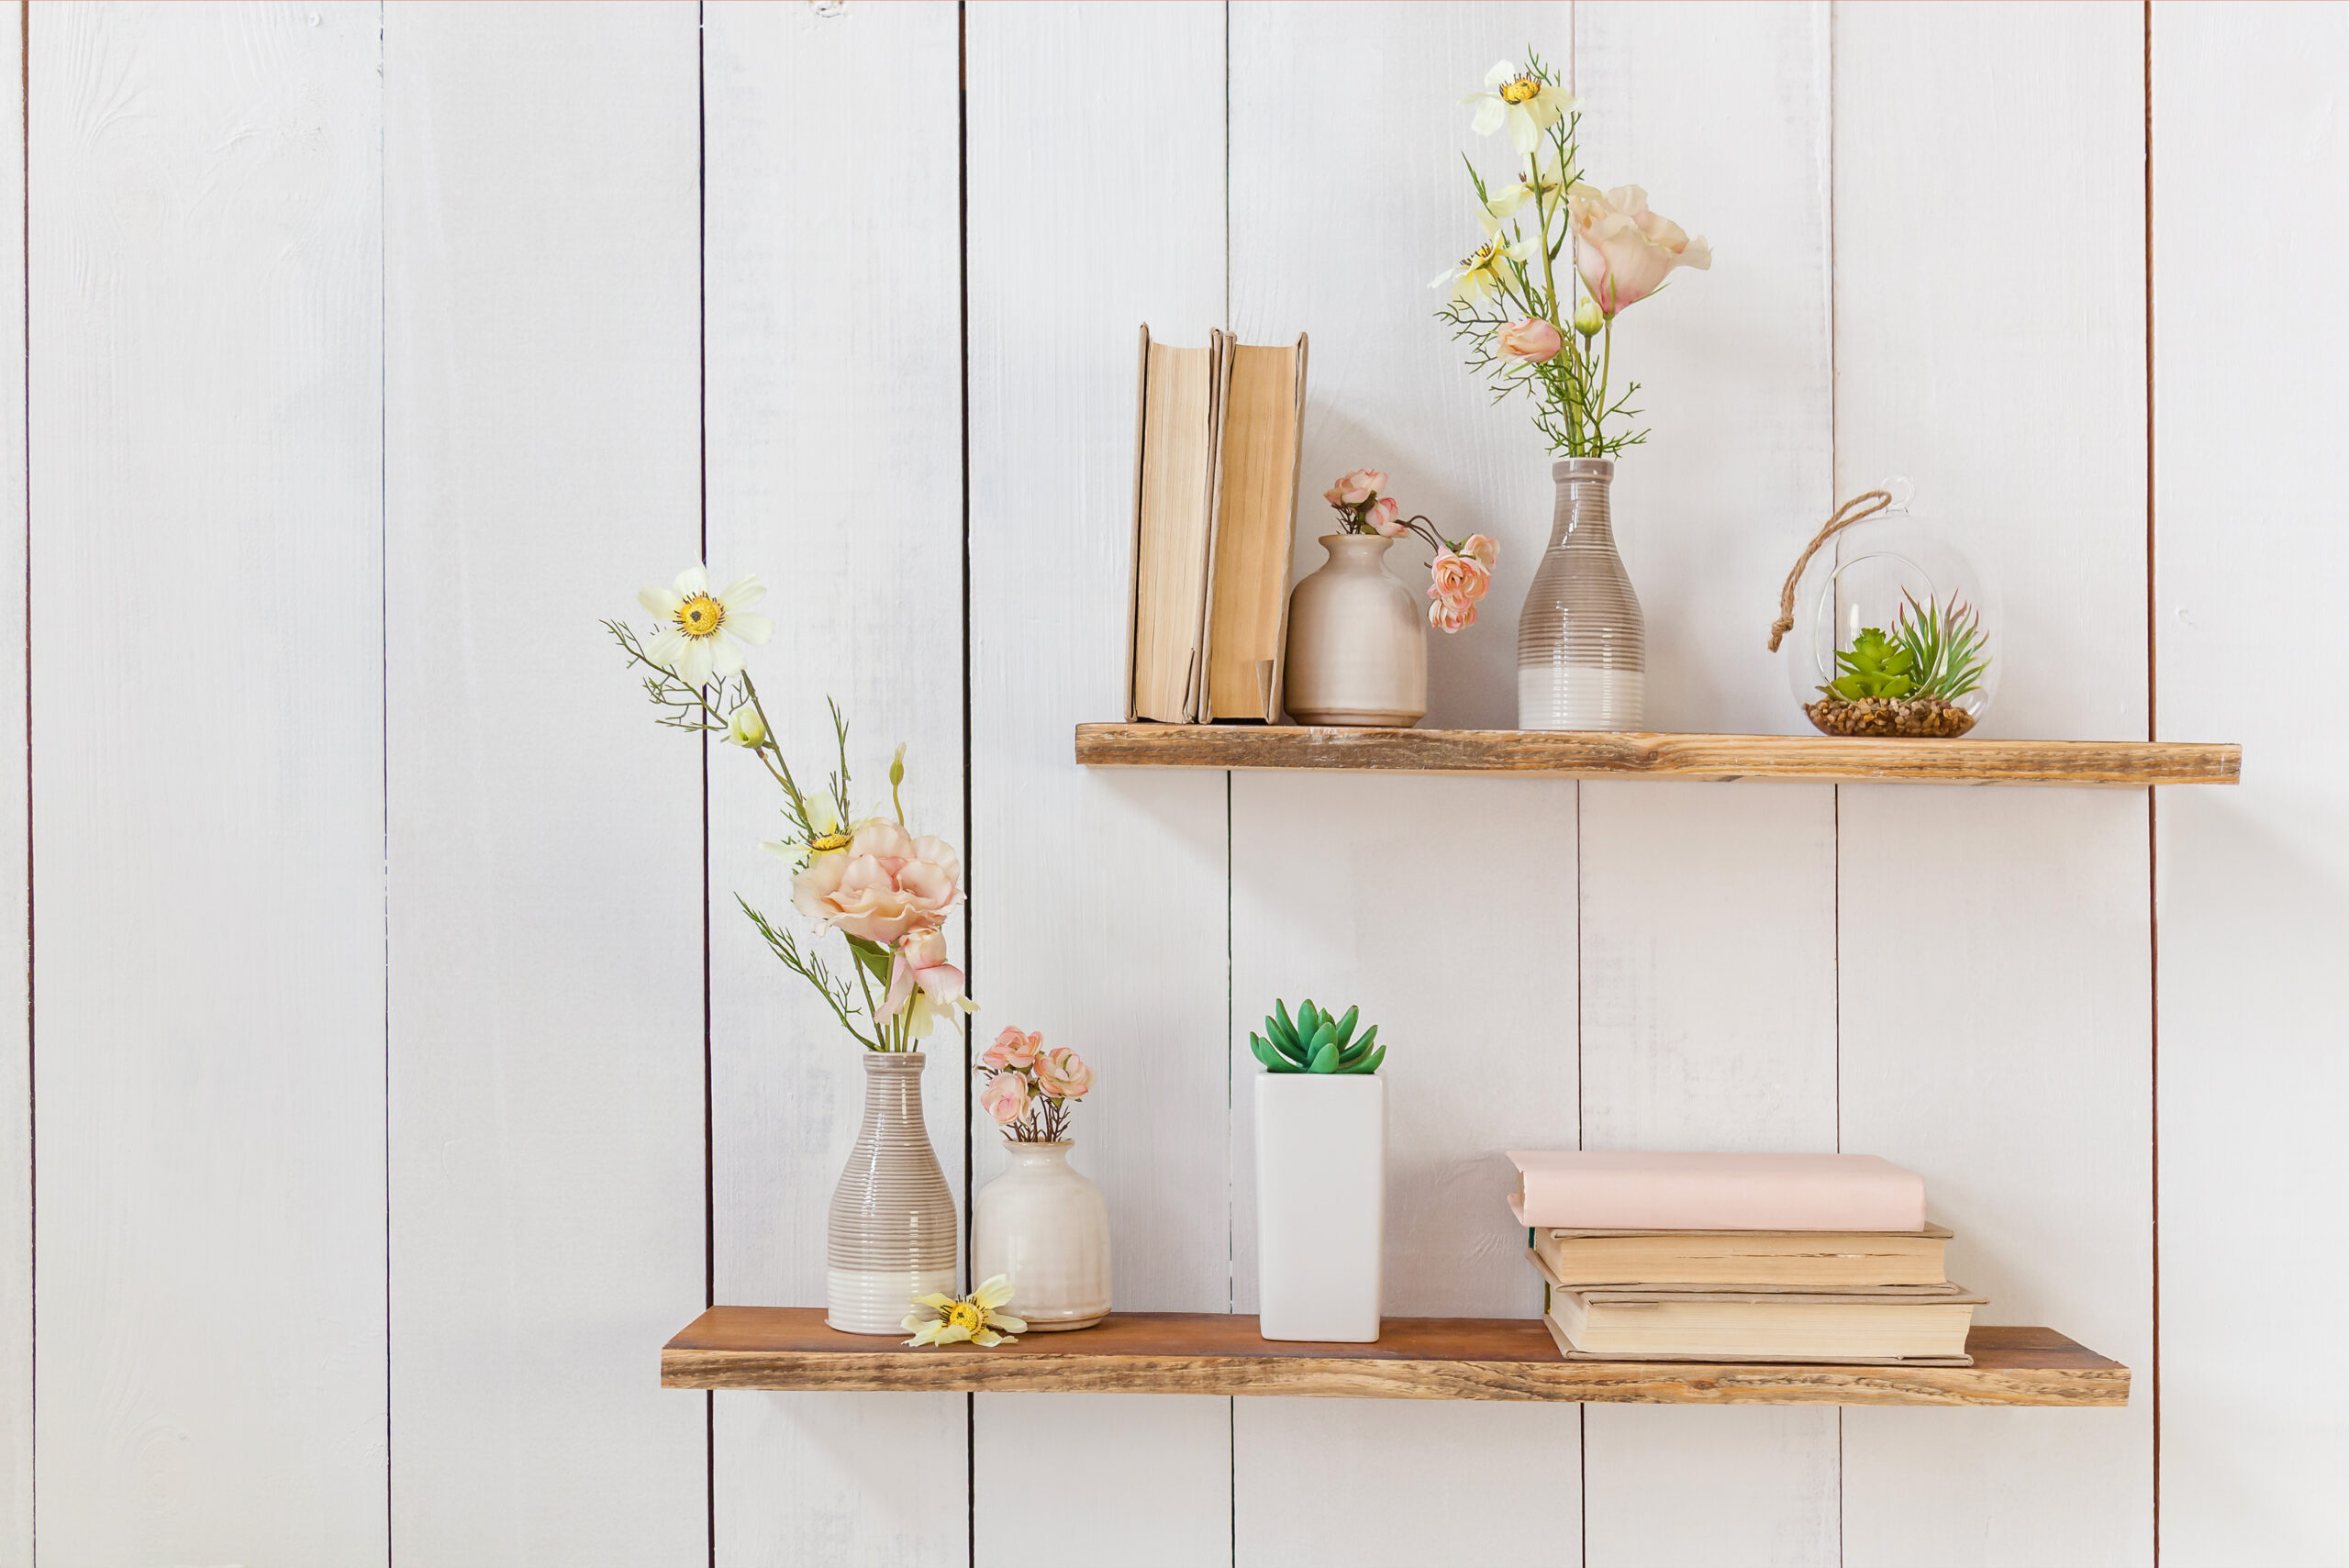 Book storage ideas for your home